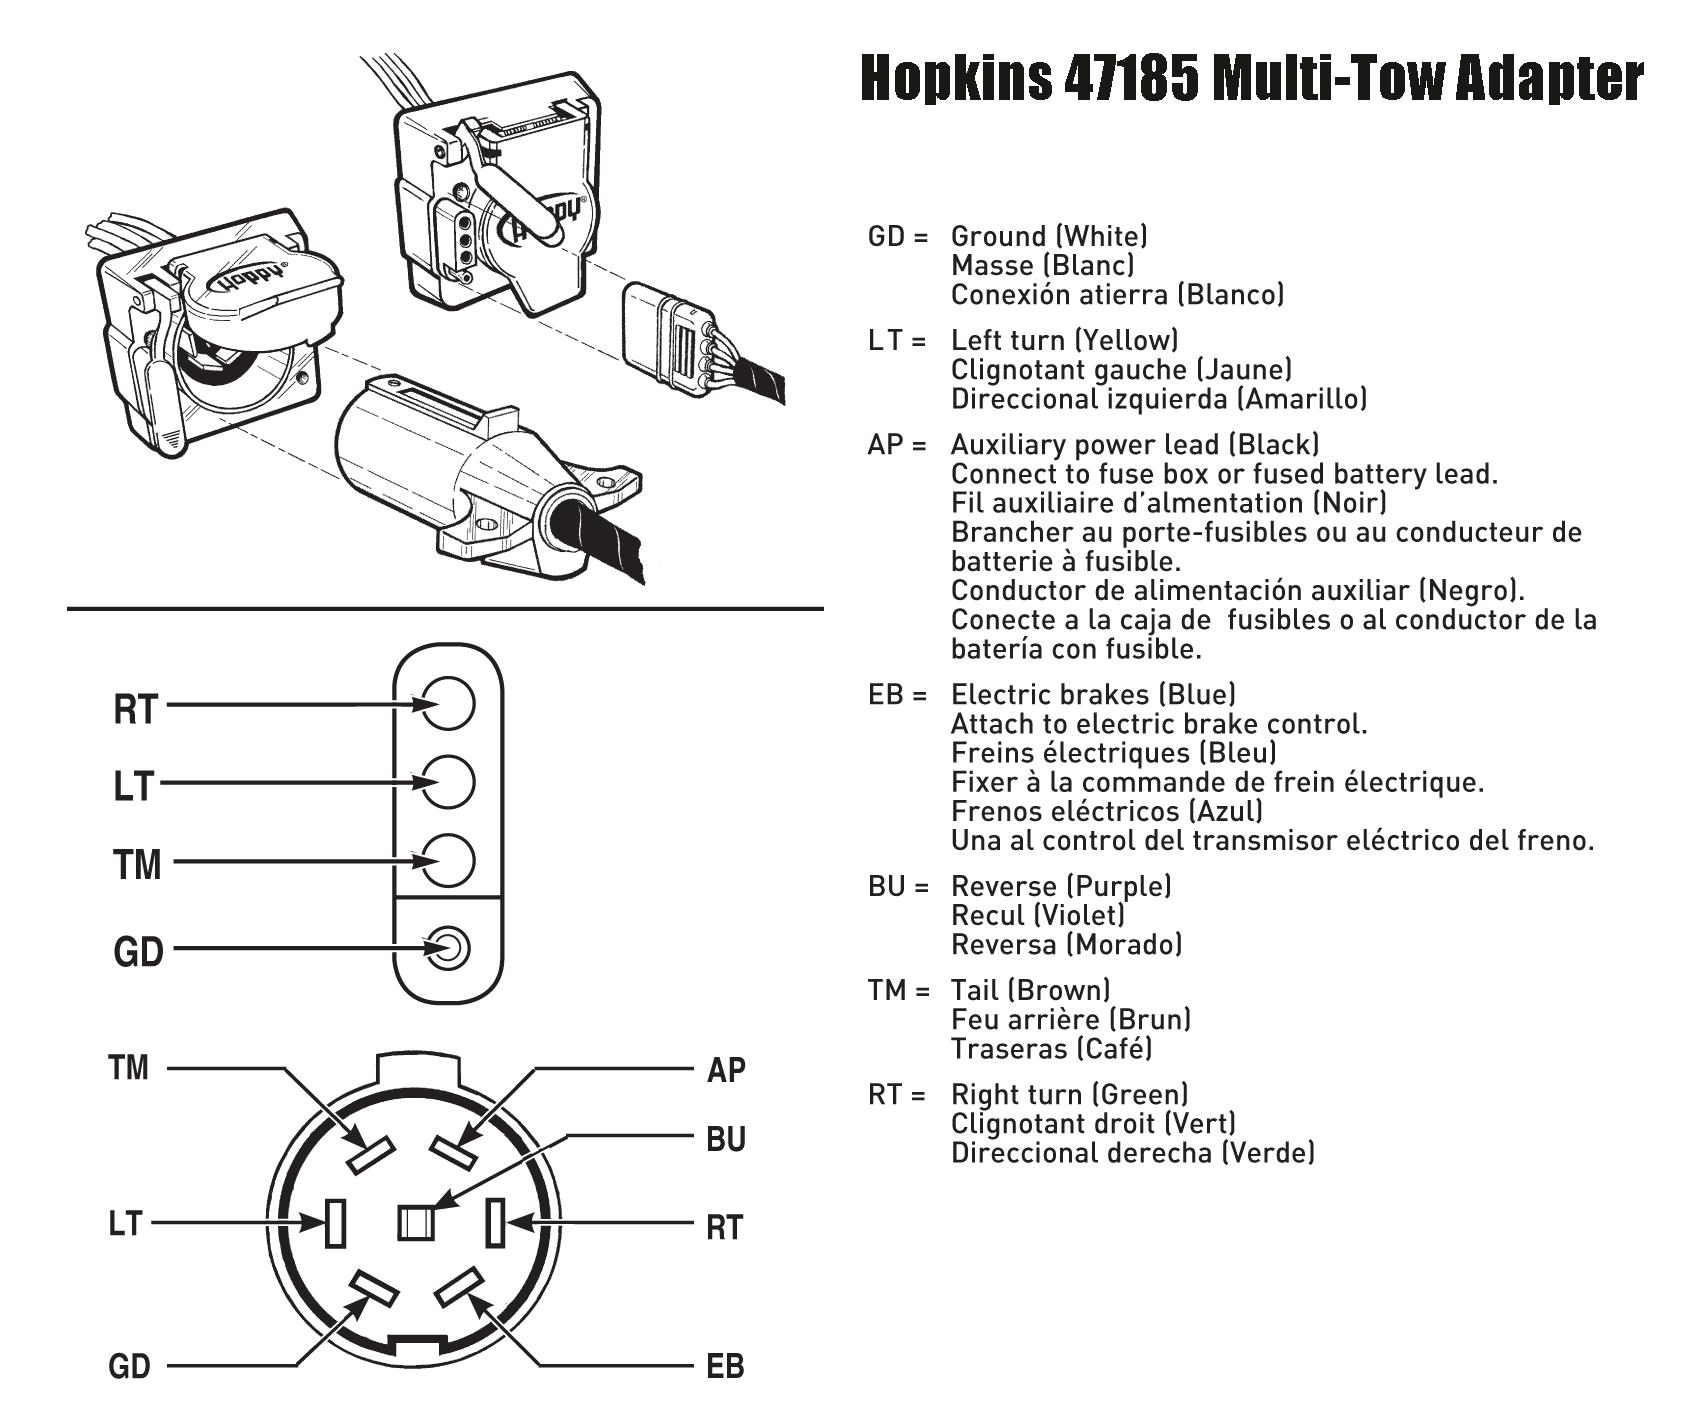 hopkins wiring diagram itil process visio amazon 47185 multi tow adapter automotive